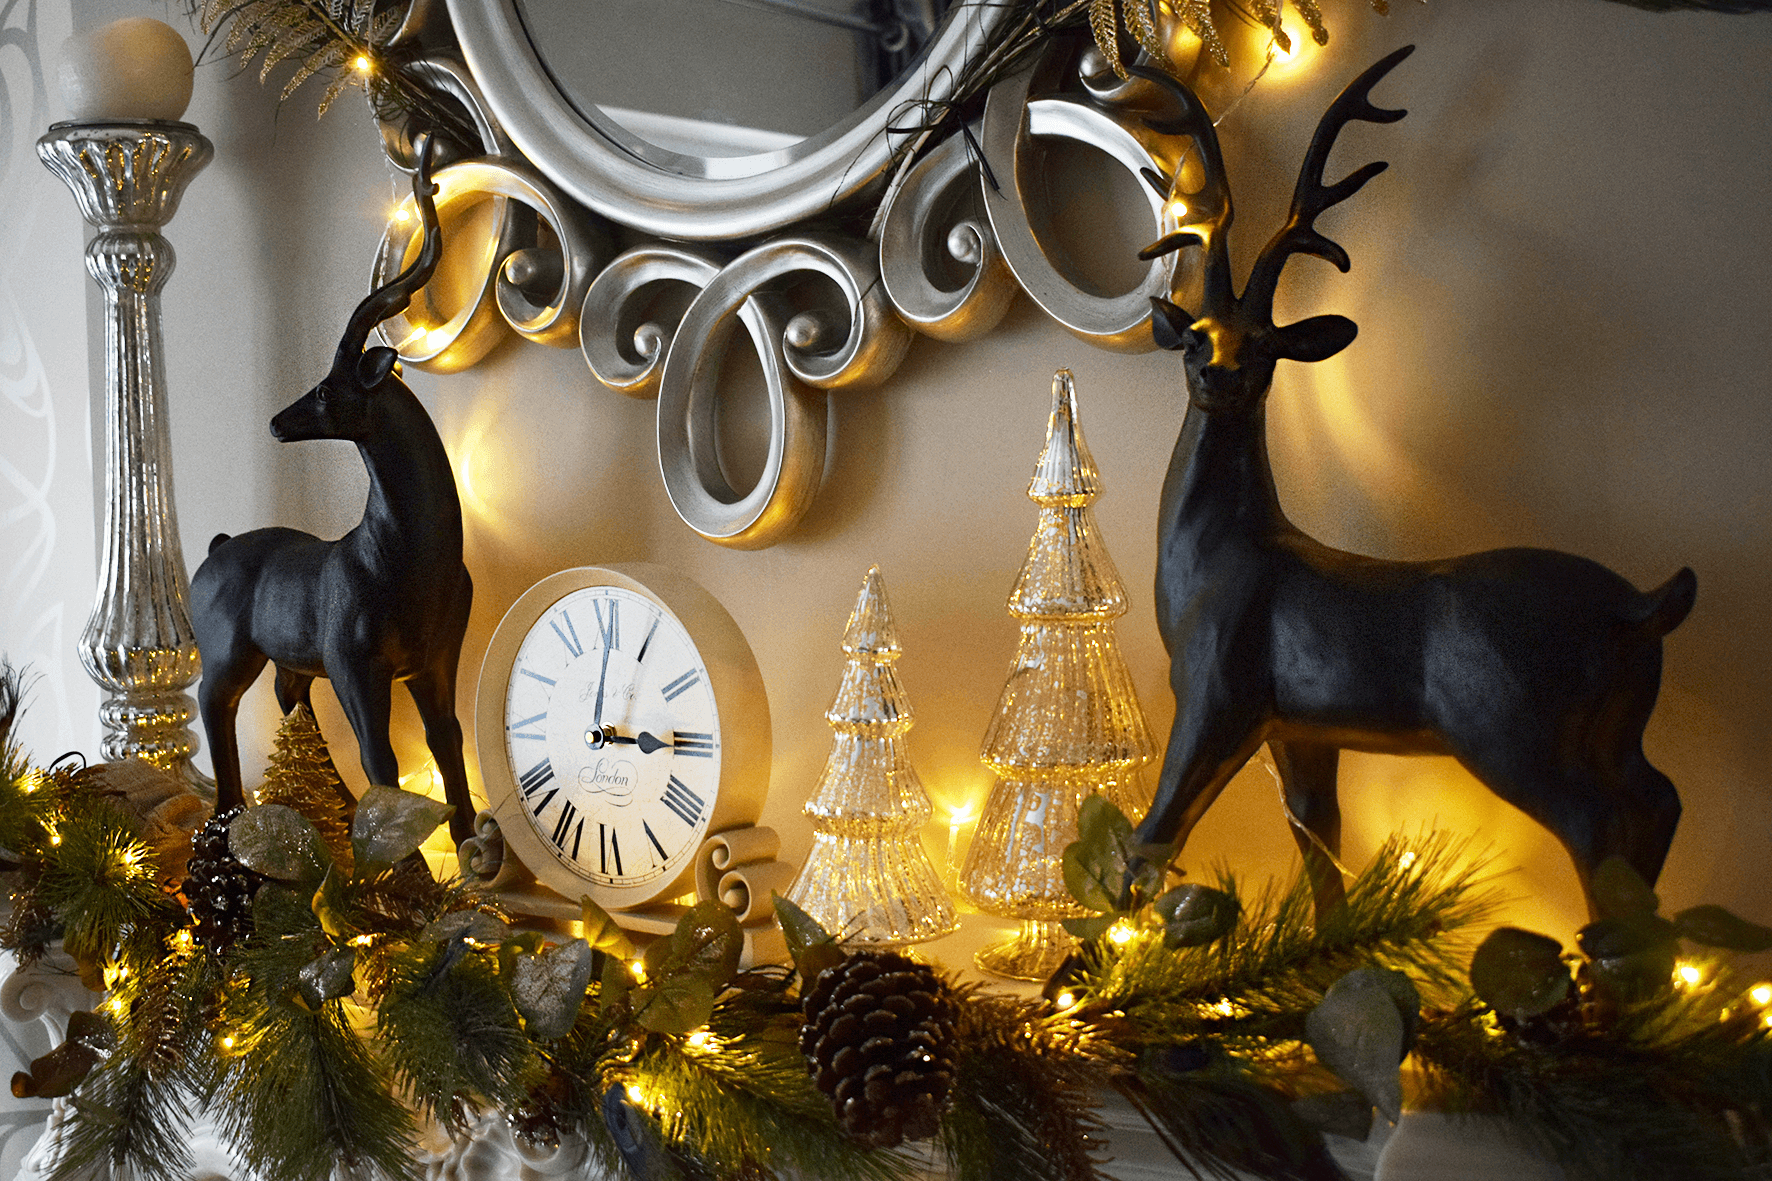 Christmas fireplace decoration ideas and inspiration